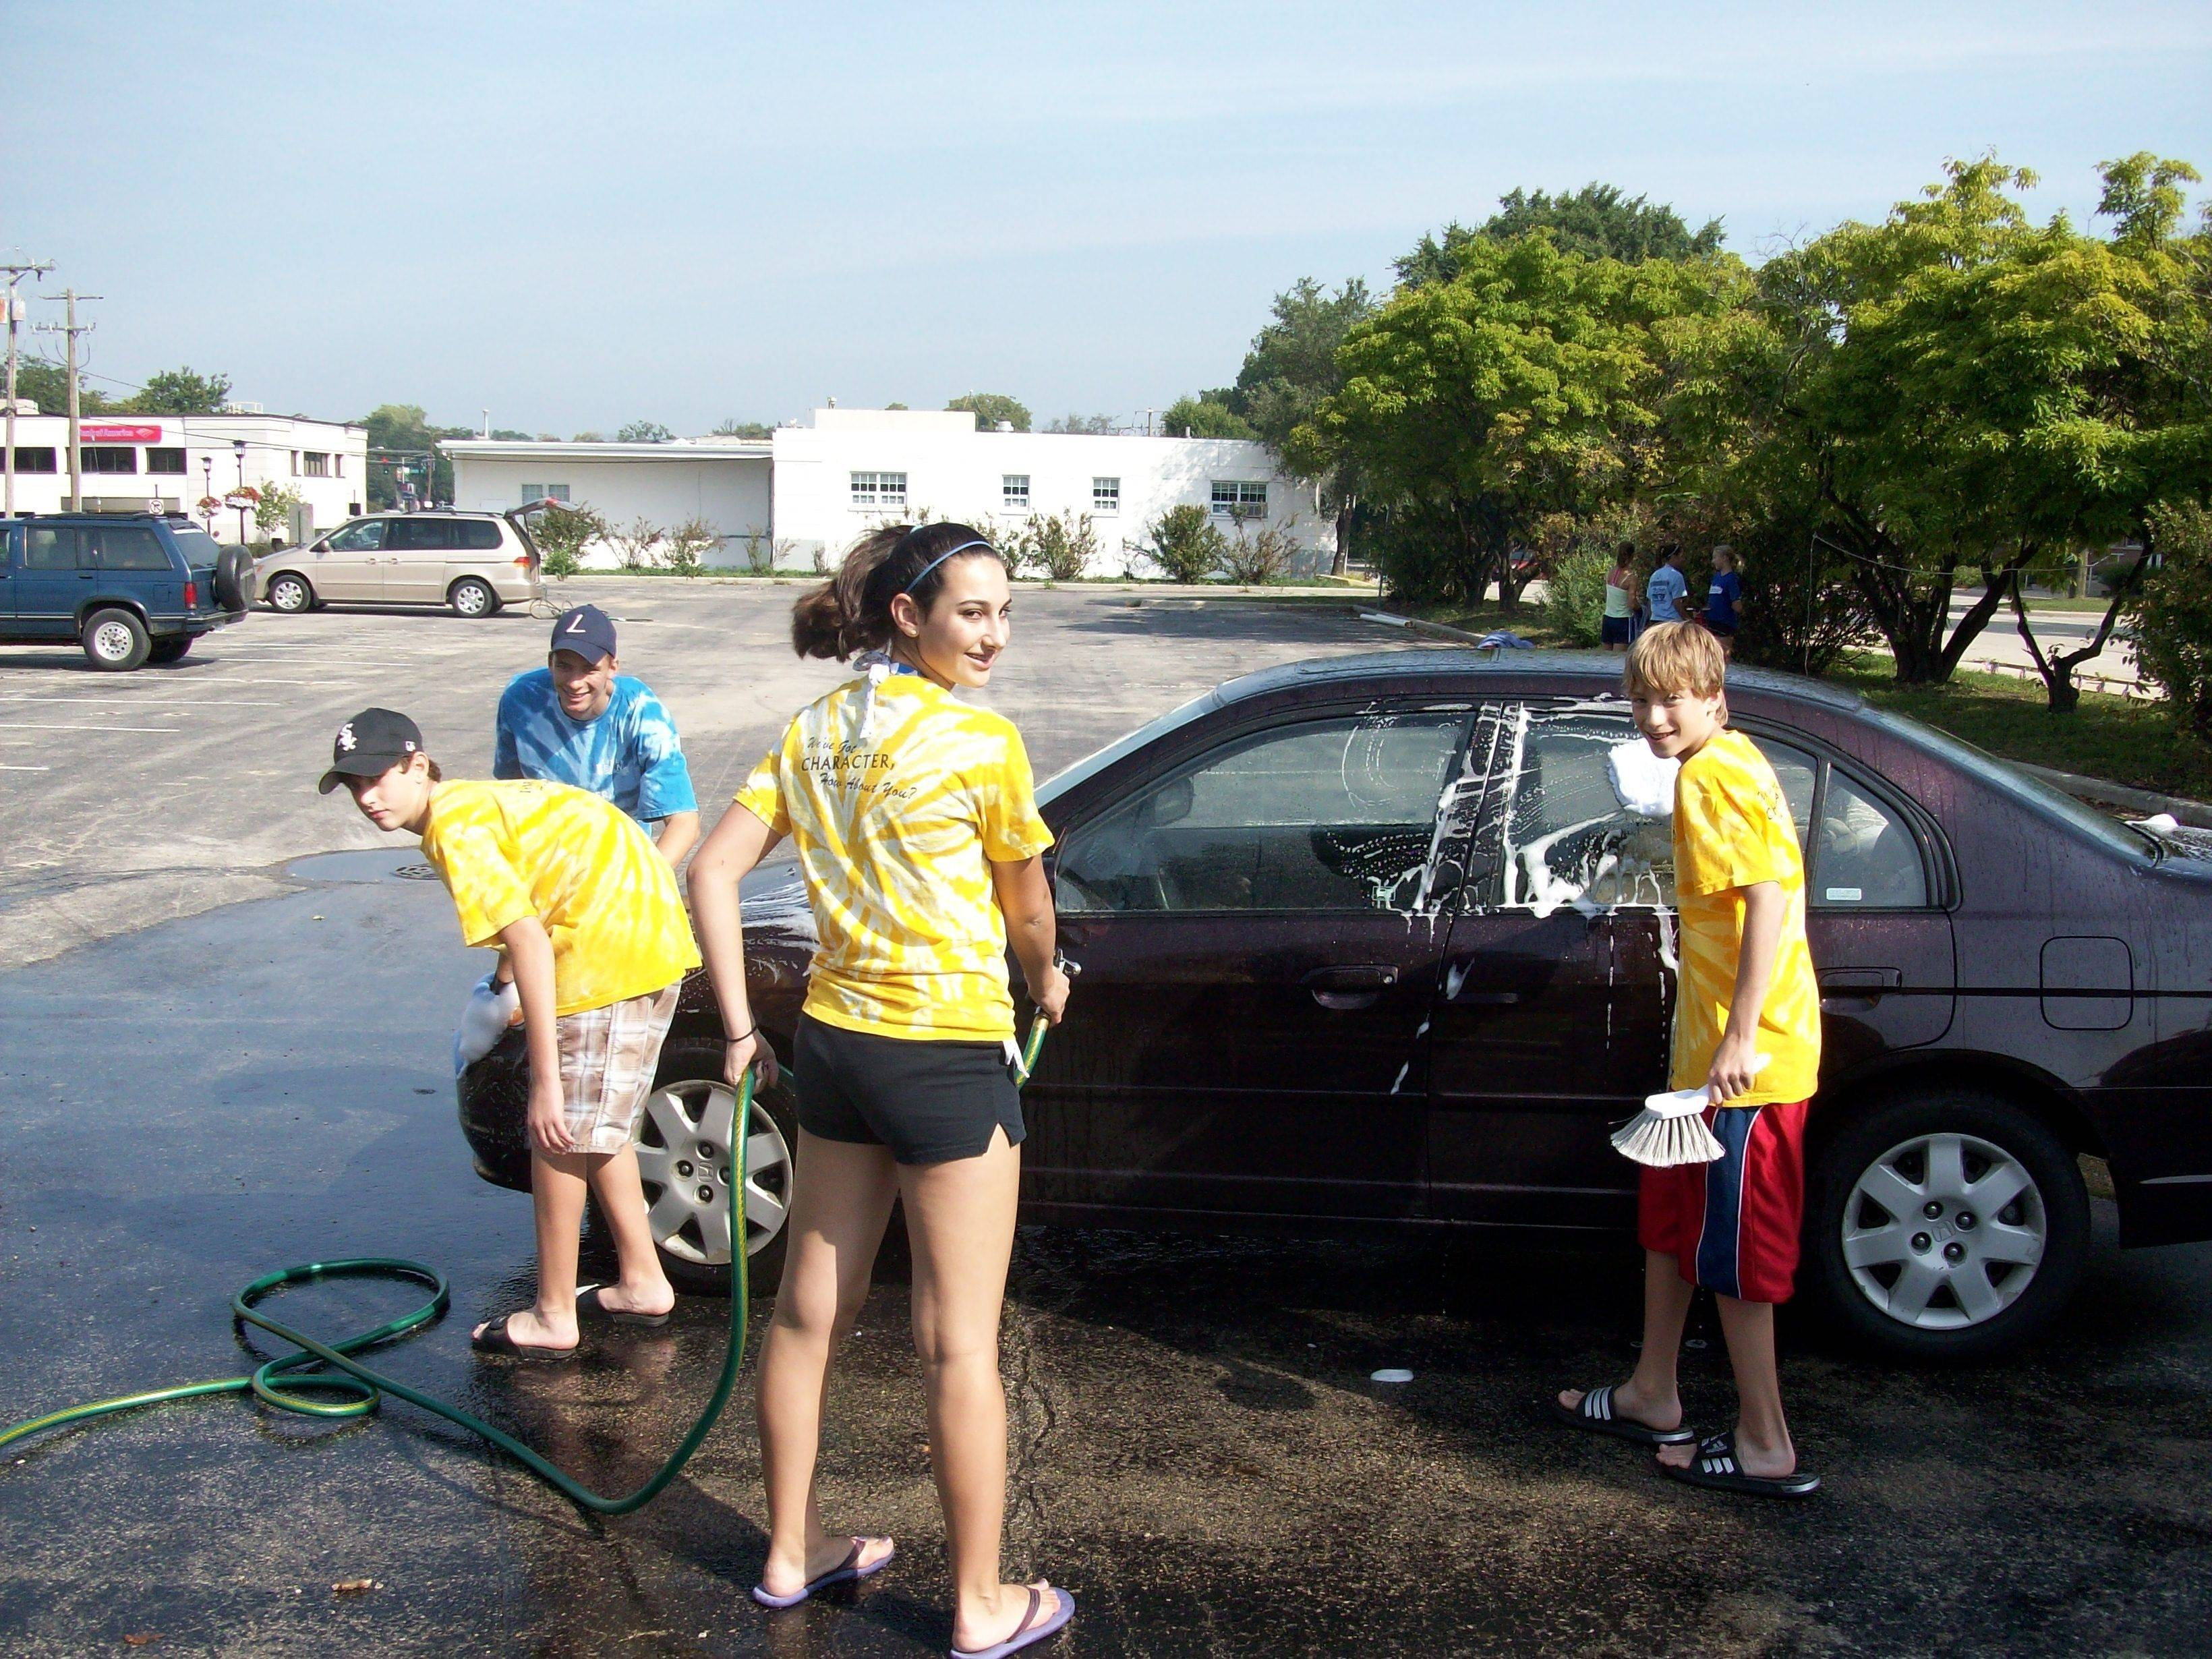 Members of Lisle Teens With Character work at their Sept. 11 Memorial Car Wash.